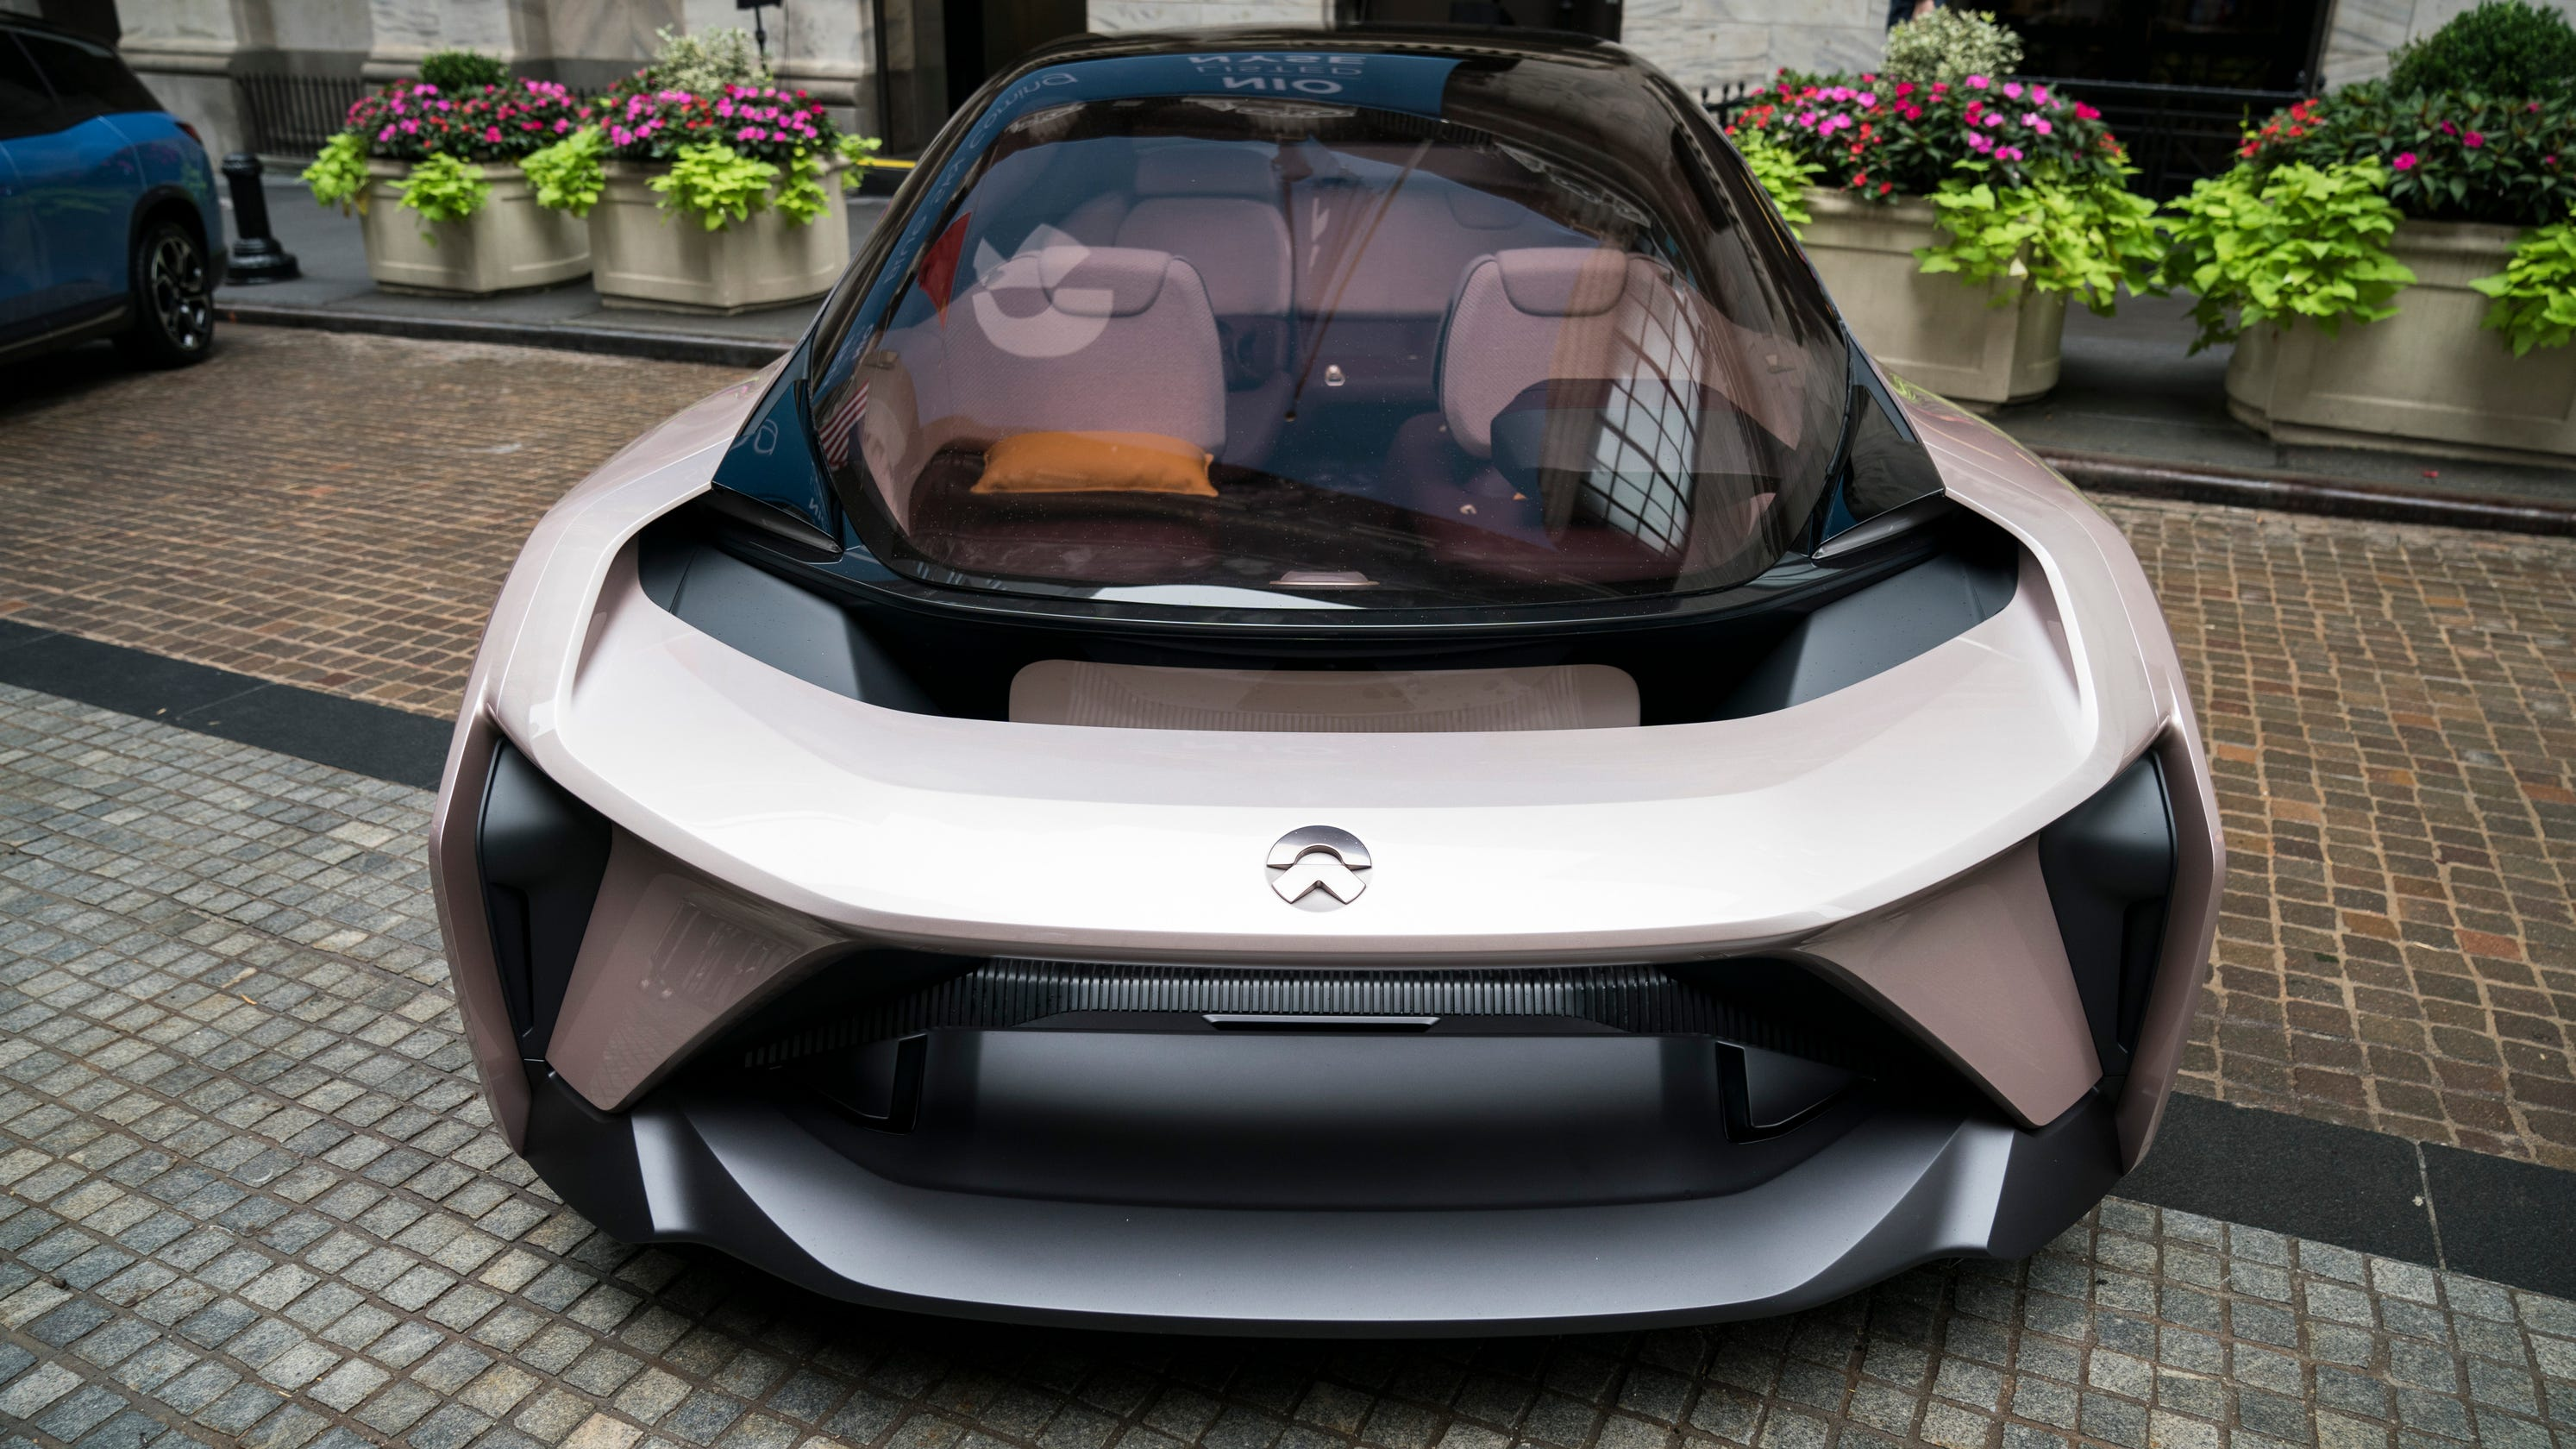 china's nio ups competitive pressure on tesla, rival automakers